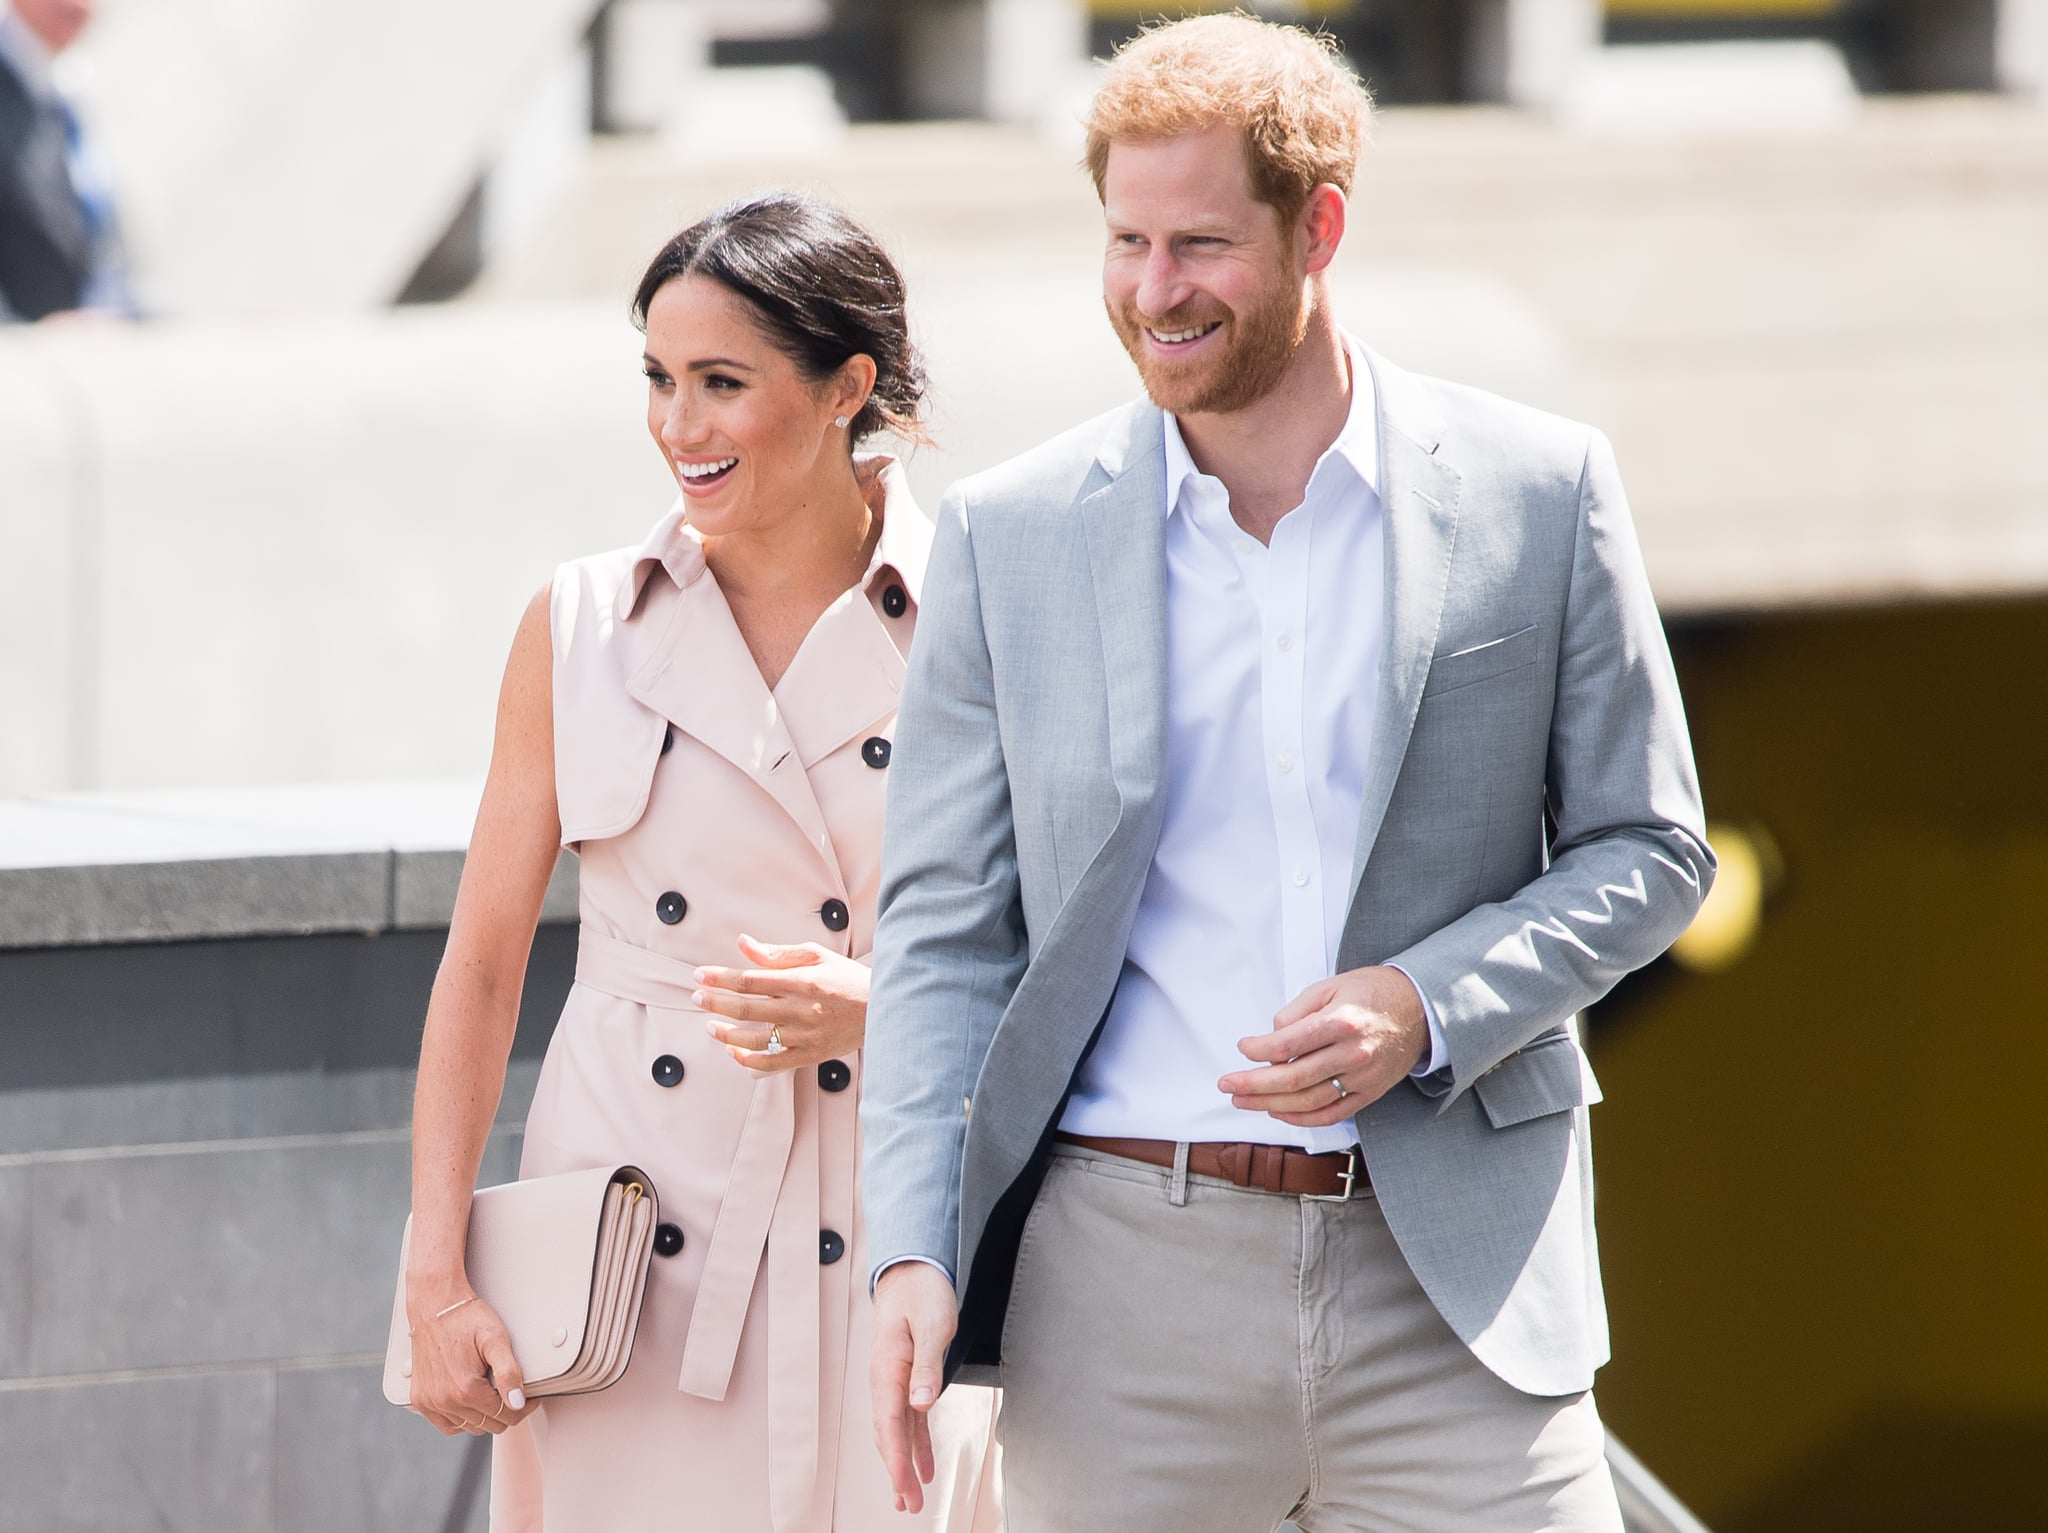 LONDON, ENGLAND - JULY 17:  Prince Harry, Duke of Sussex and Meghan, Duchess of Sussex visit The Nelson Mandela Centenary Exhibition at Southbank Centre on July 17, 2018 in London, England.  (Photo by Samir Hussein/Samir Hussein/WireImage)